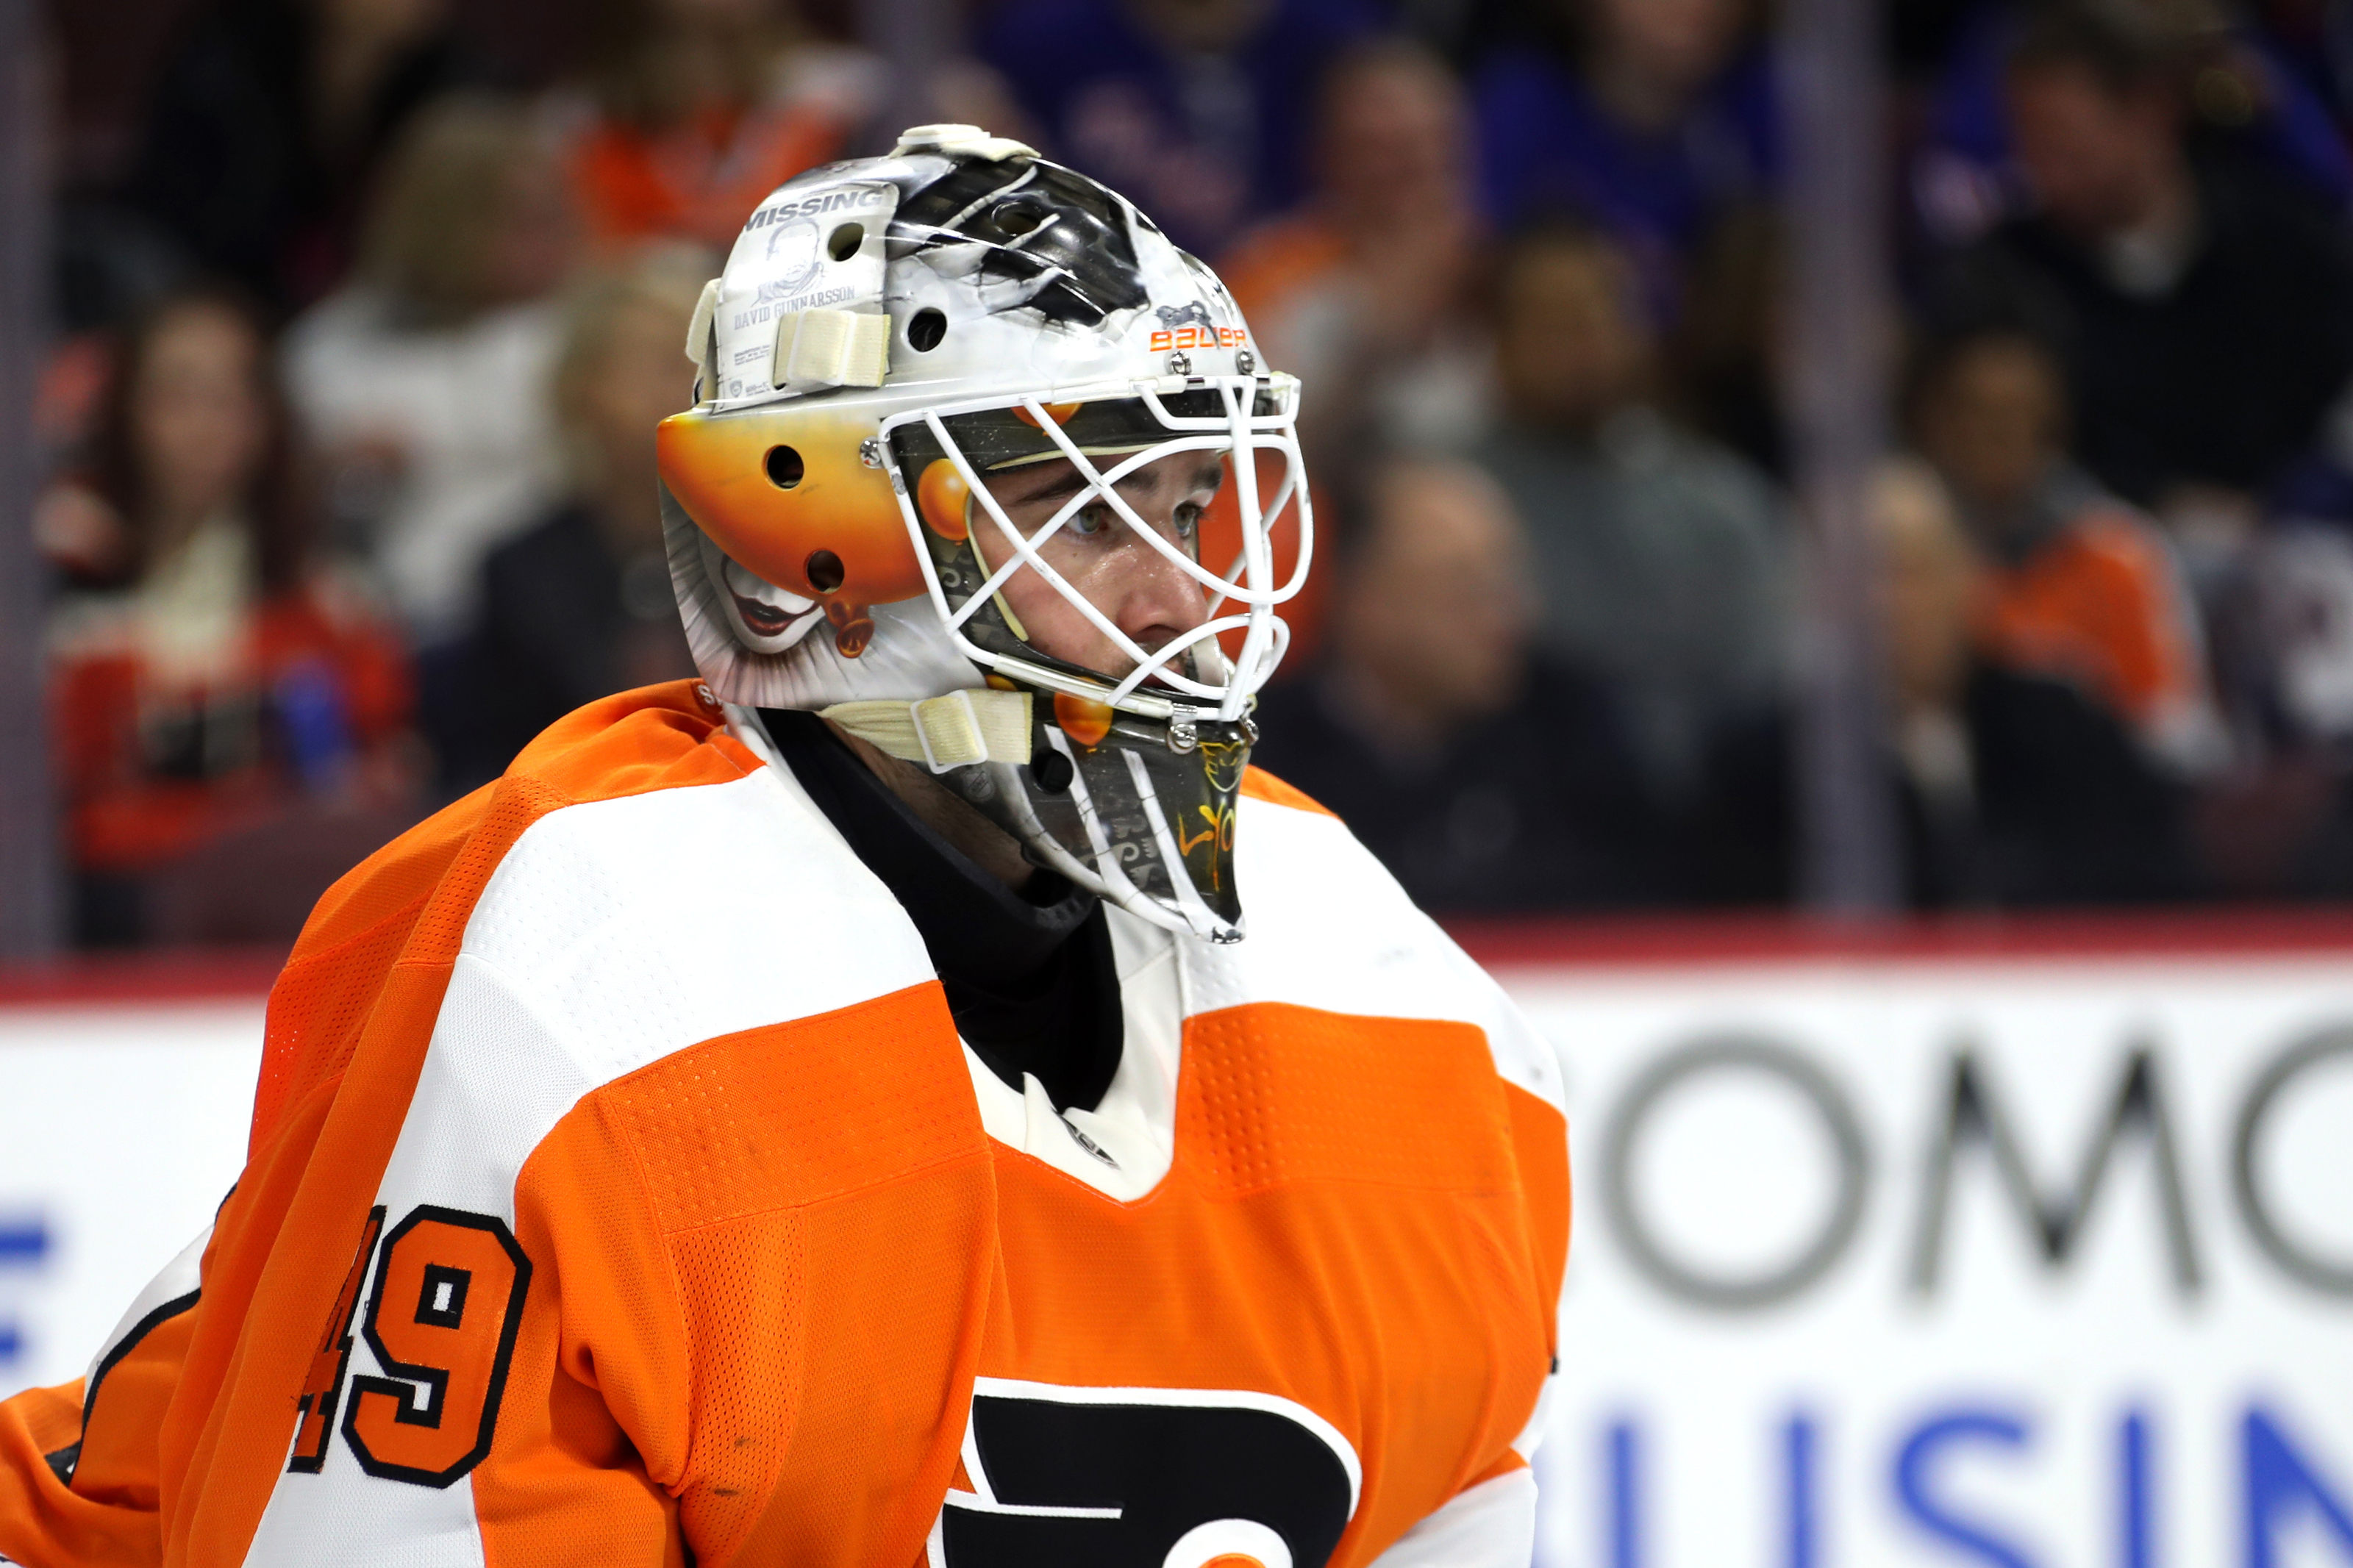 Flyers Goalie Avoids Free Agency